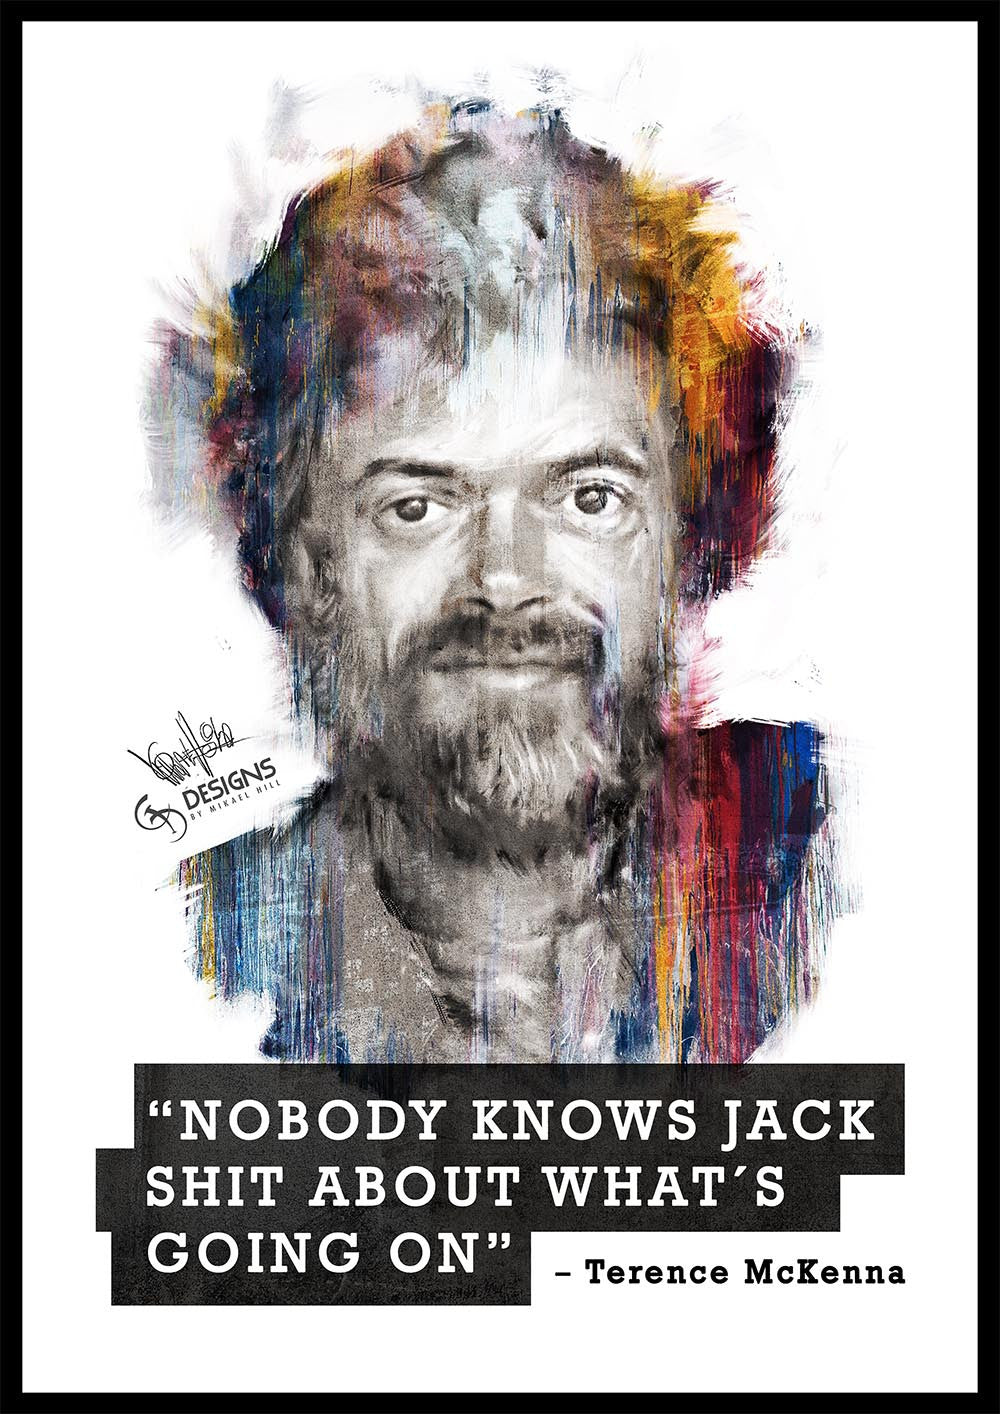 Terence McKenna Tribute #2